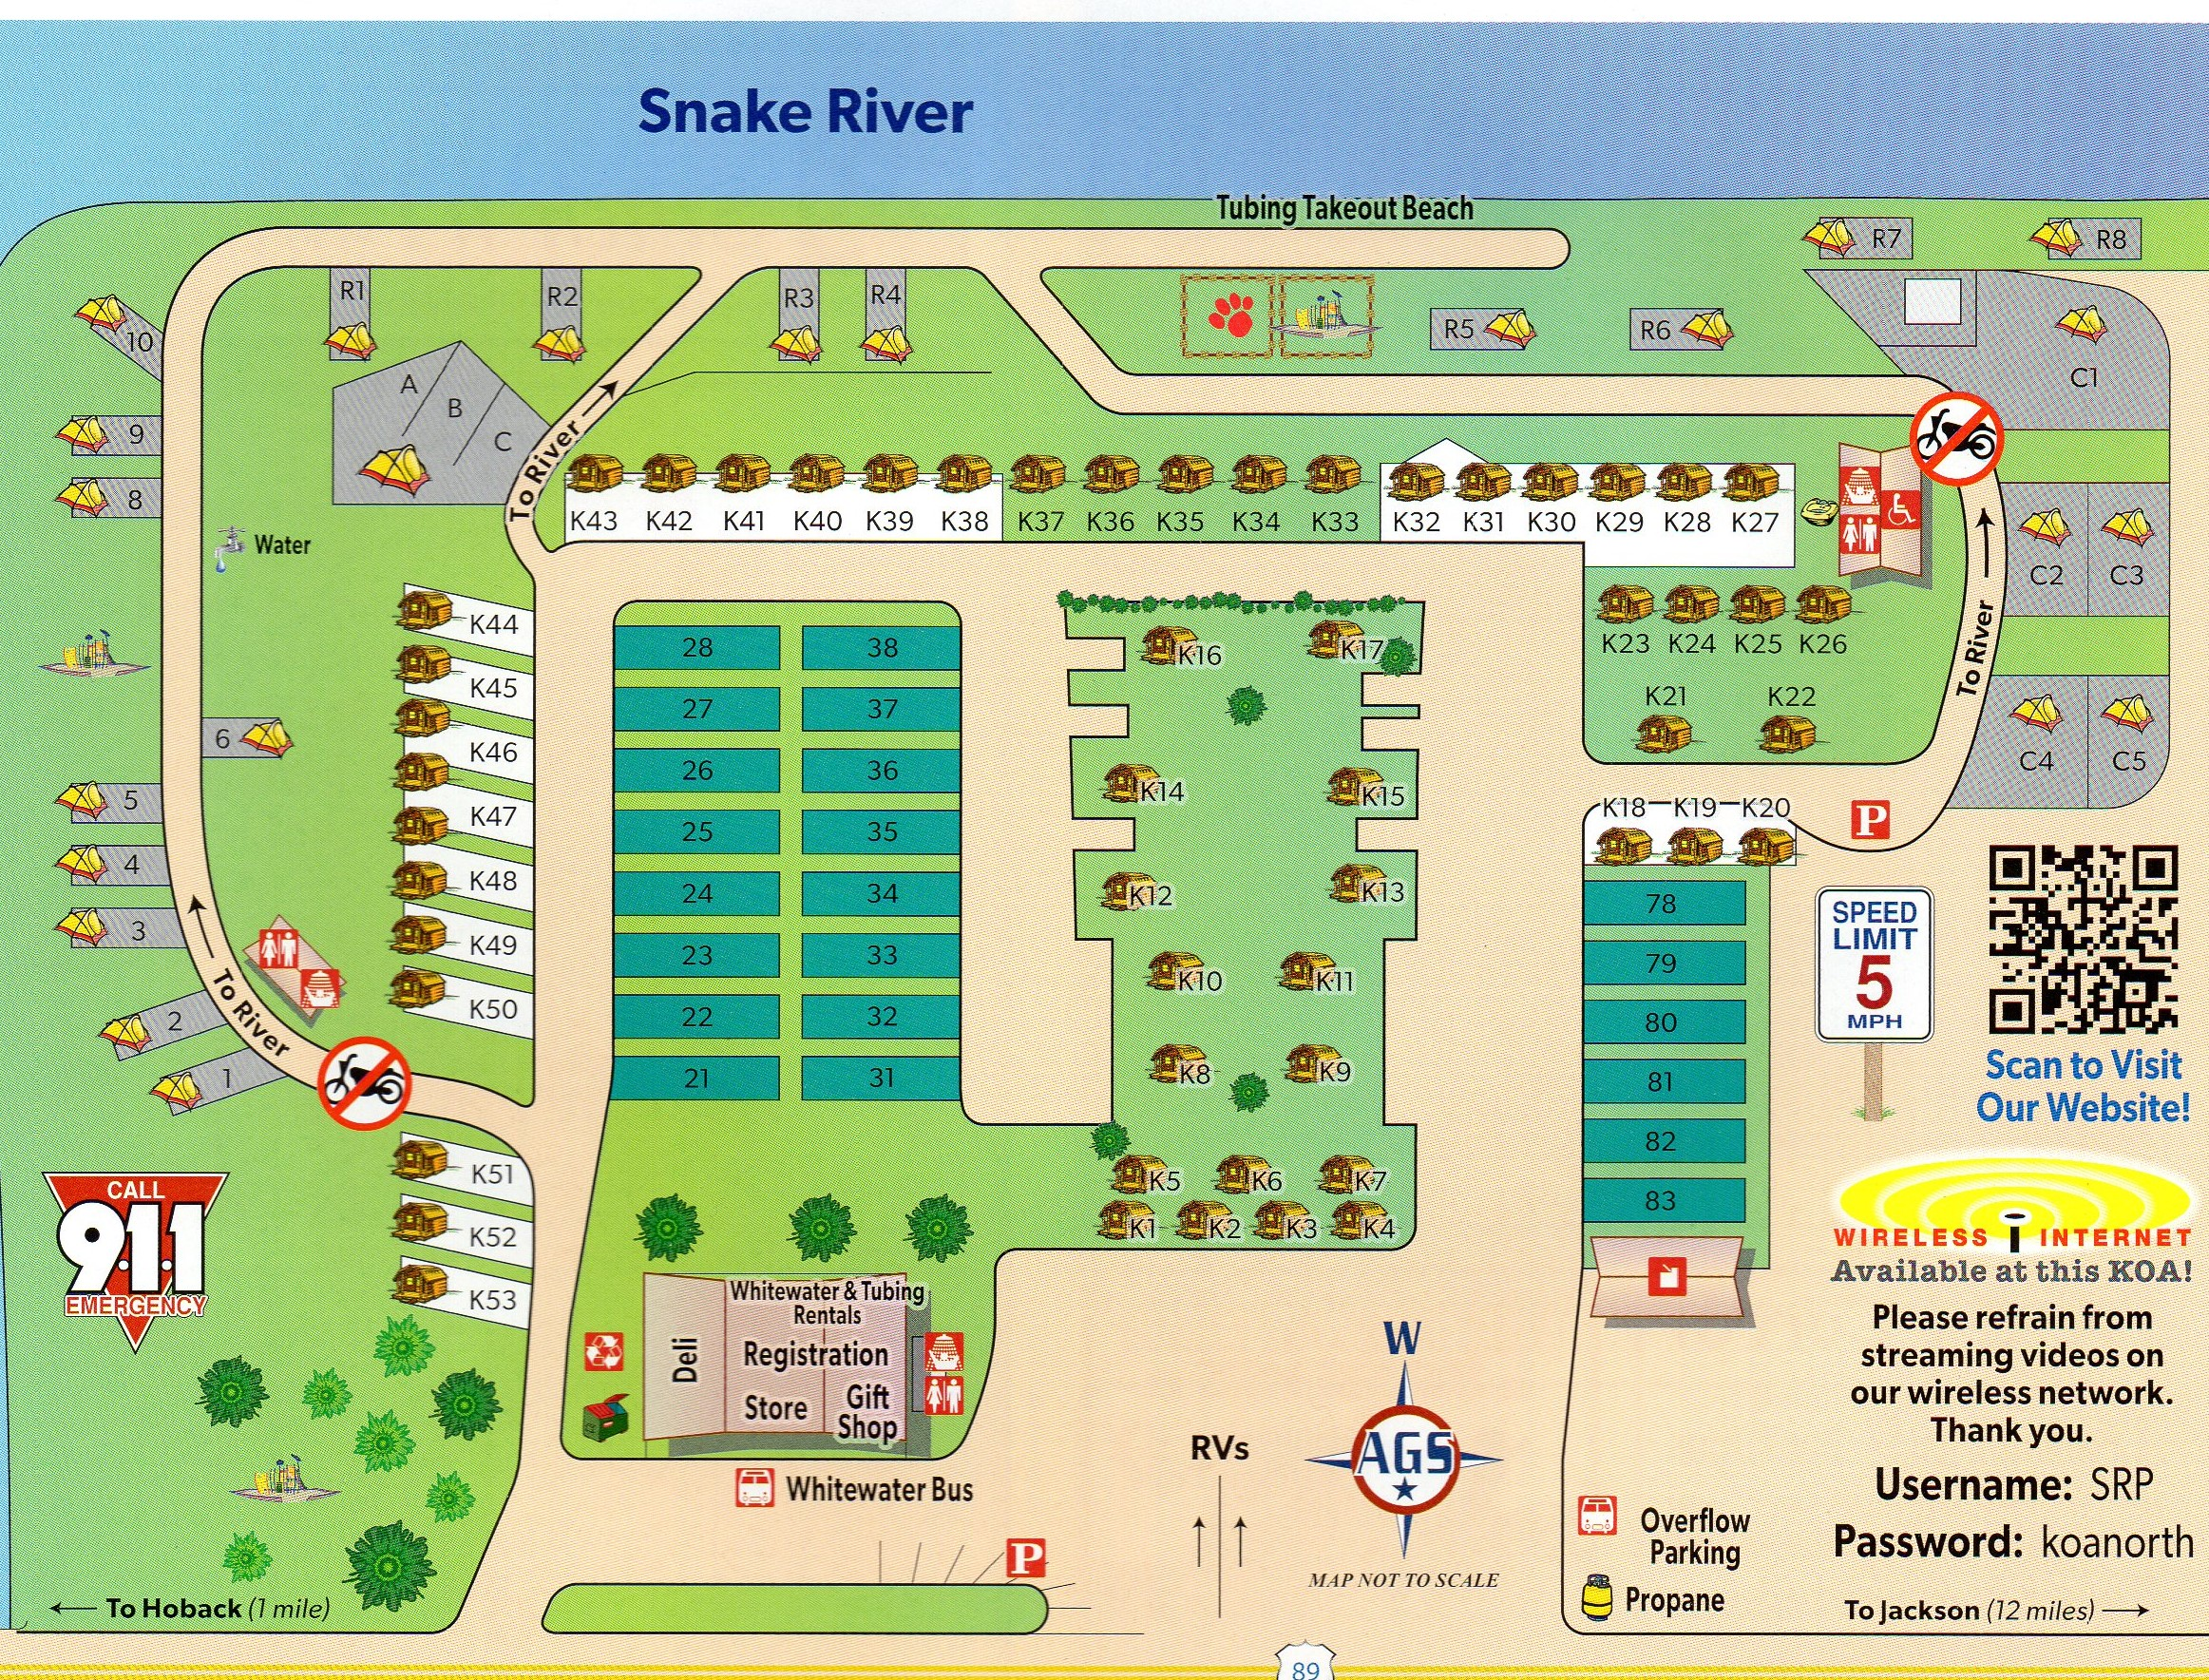 Jackson Wyoming Lodging Hole Snake River Koa Wiring Diagram Campground Site Map